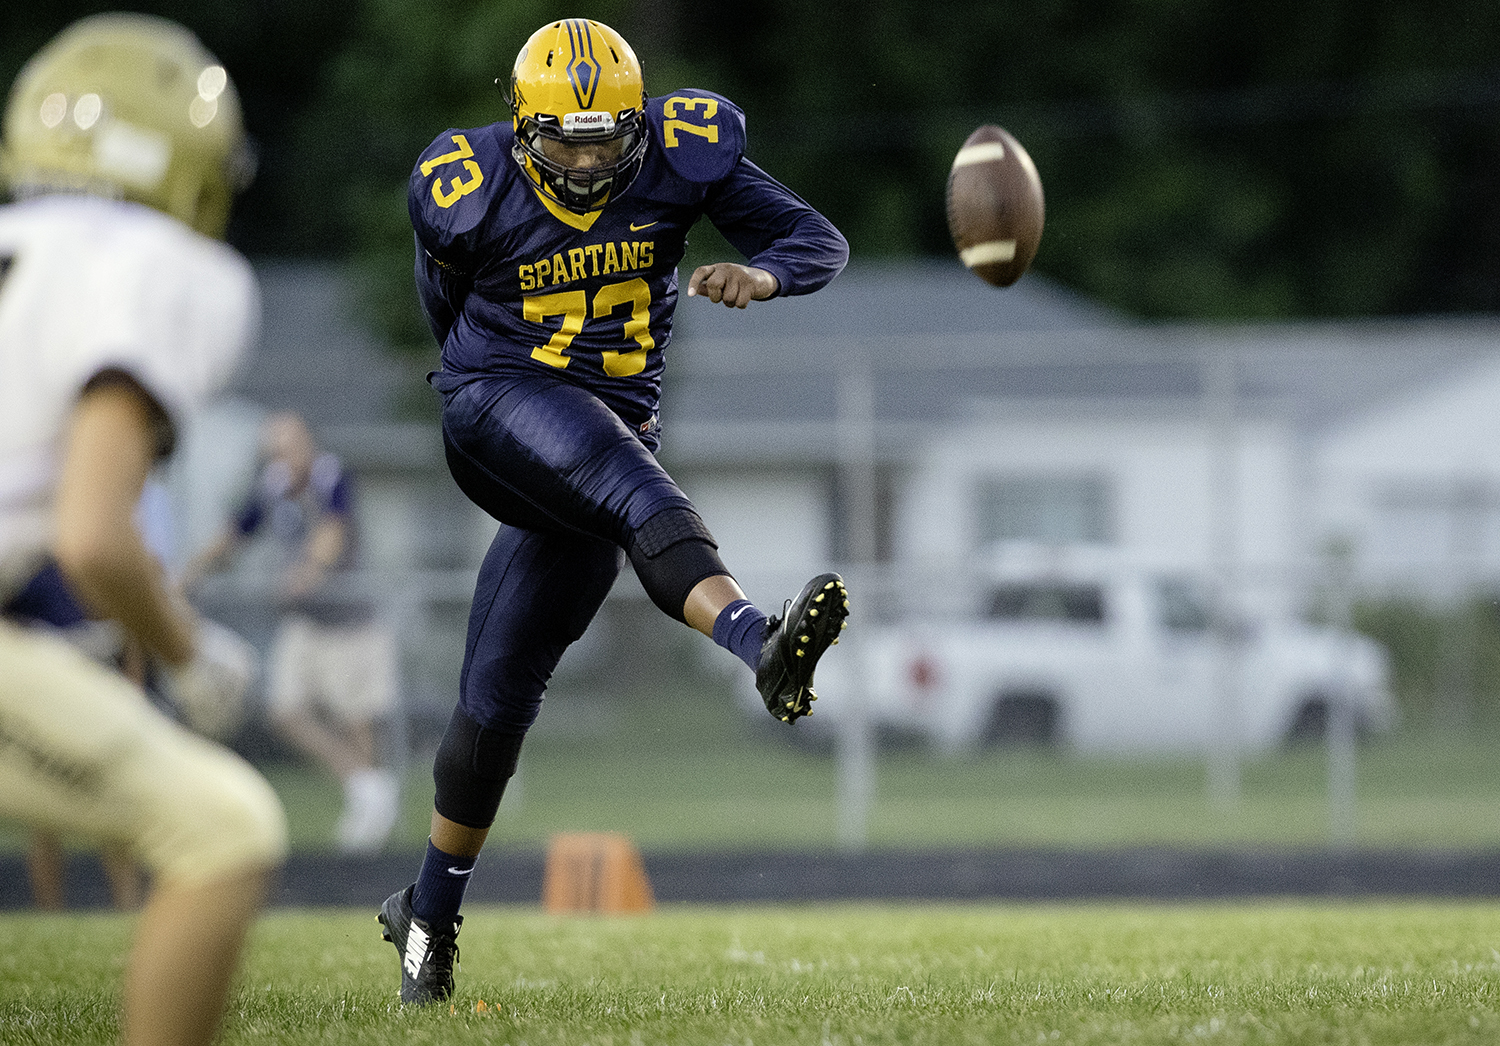 Southeast's Decorian Sexton kicks the ball away to Sacred Heart-Griffin at Southeast High School Friday, Sept. 14, 2018. [Ted Schurter/The State Journal-Register]